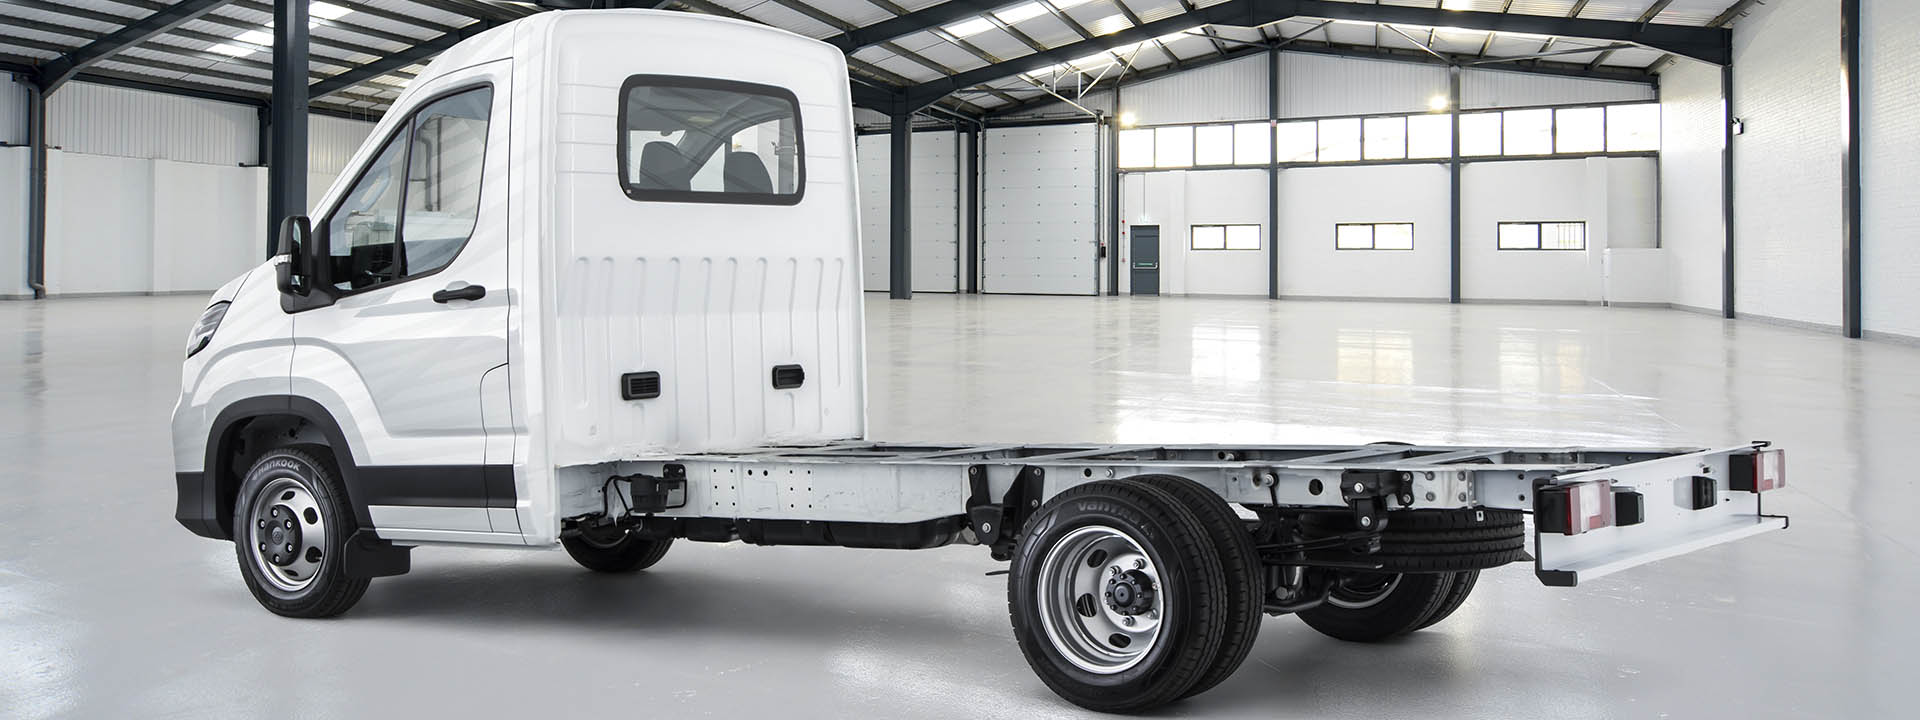 Deliver 9 Cab Chassis Image